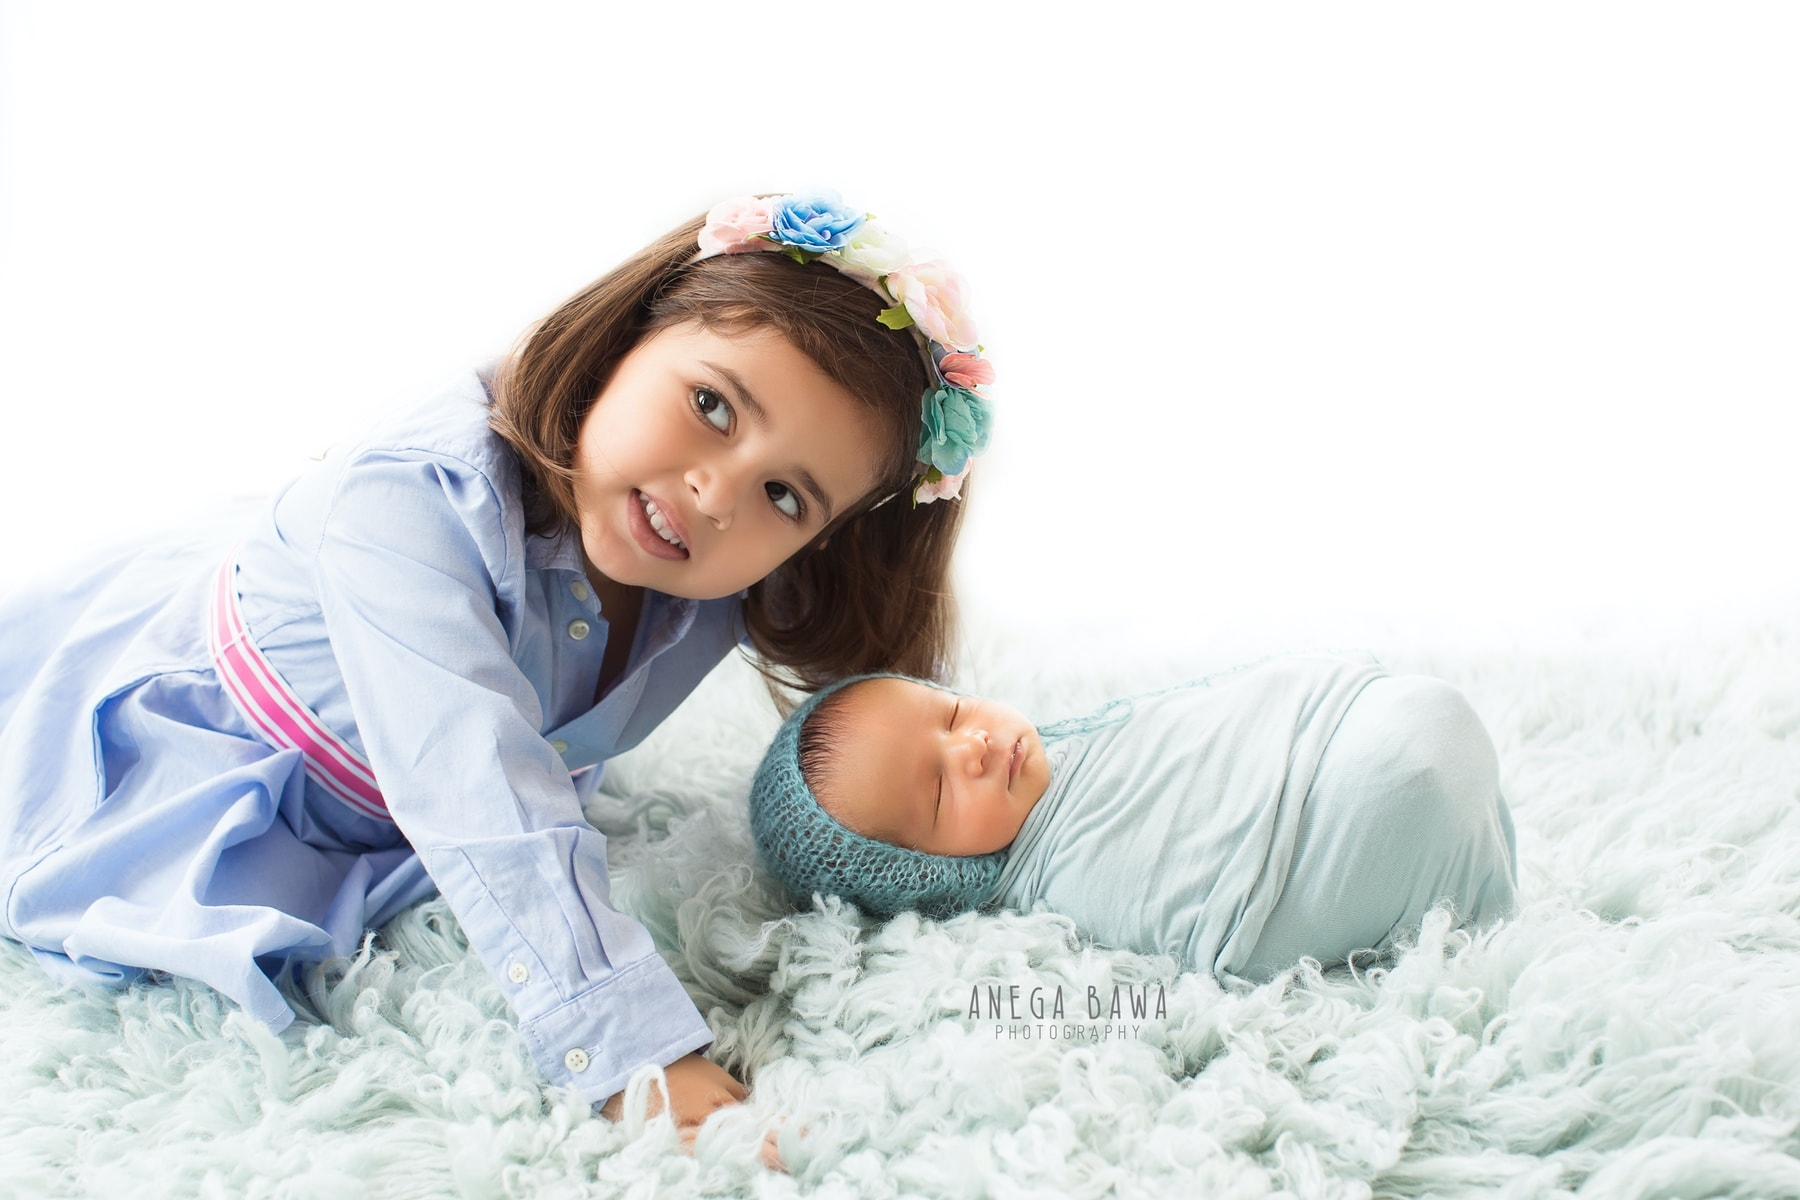 white blue sister and baby photography delhi 11 days newborn photoshoot gurgaon anega bawa